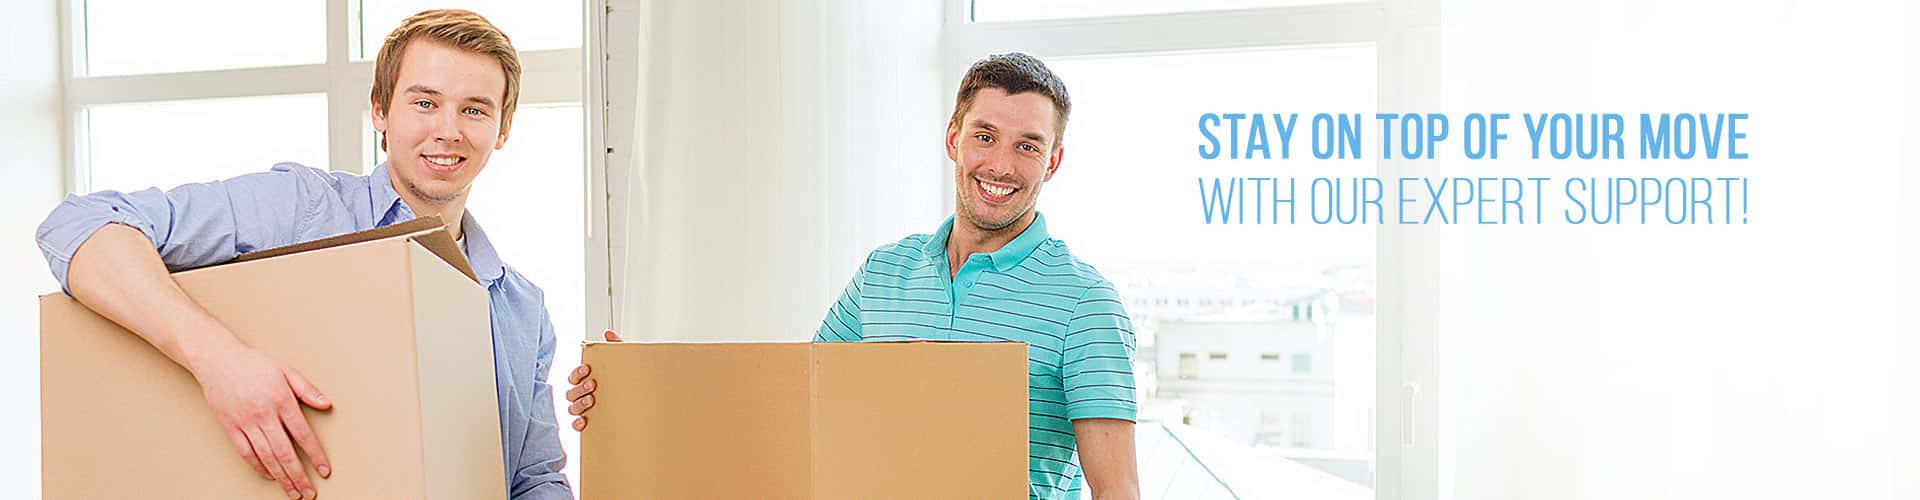 Tips for Surviving a Move across the Country